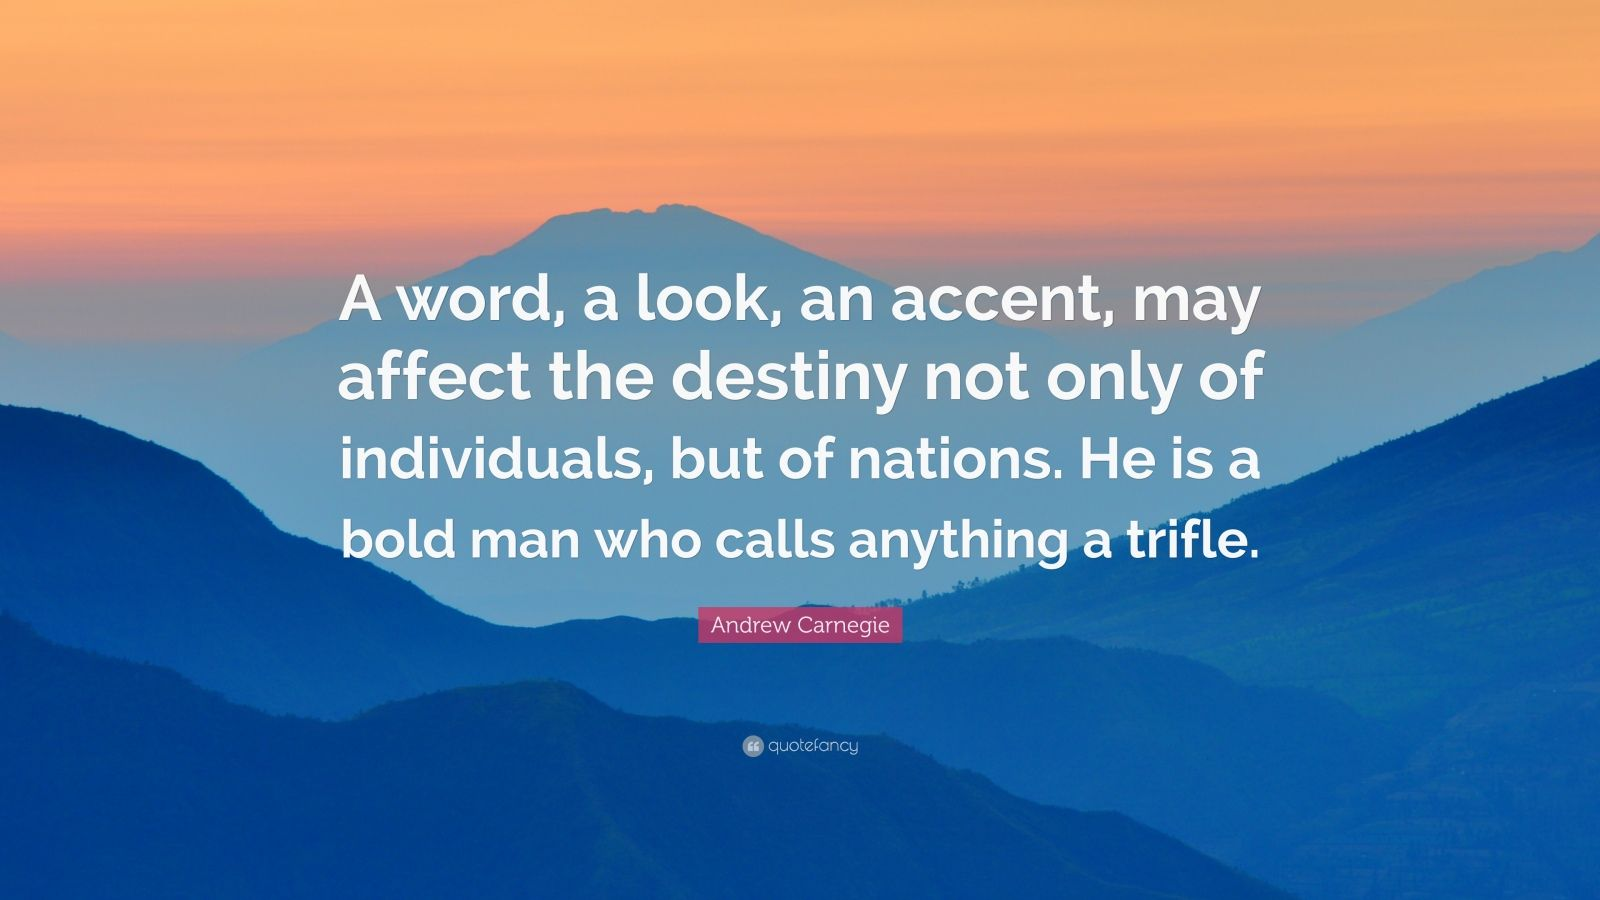 """Andrew Carnegie Quote: """"A word, a look, an accent, may affect the destiny not only of individuals, but of nations. He is a bold man who calls anything a trifle."""""""